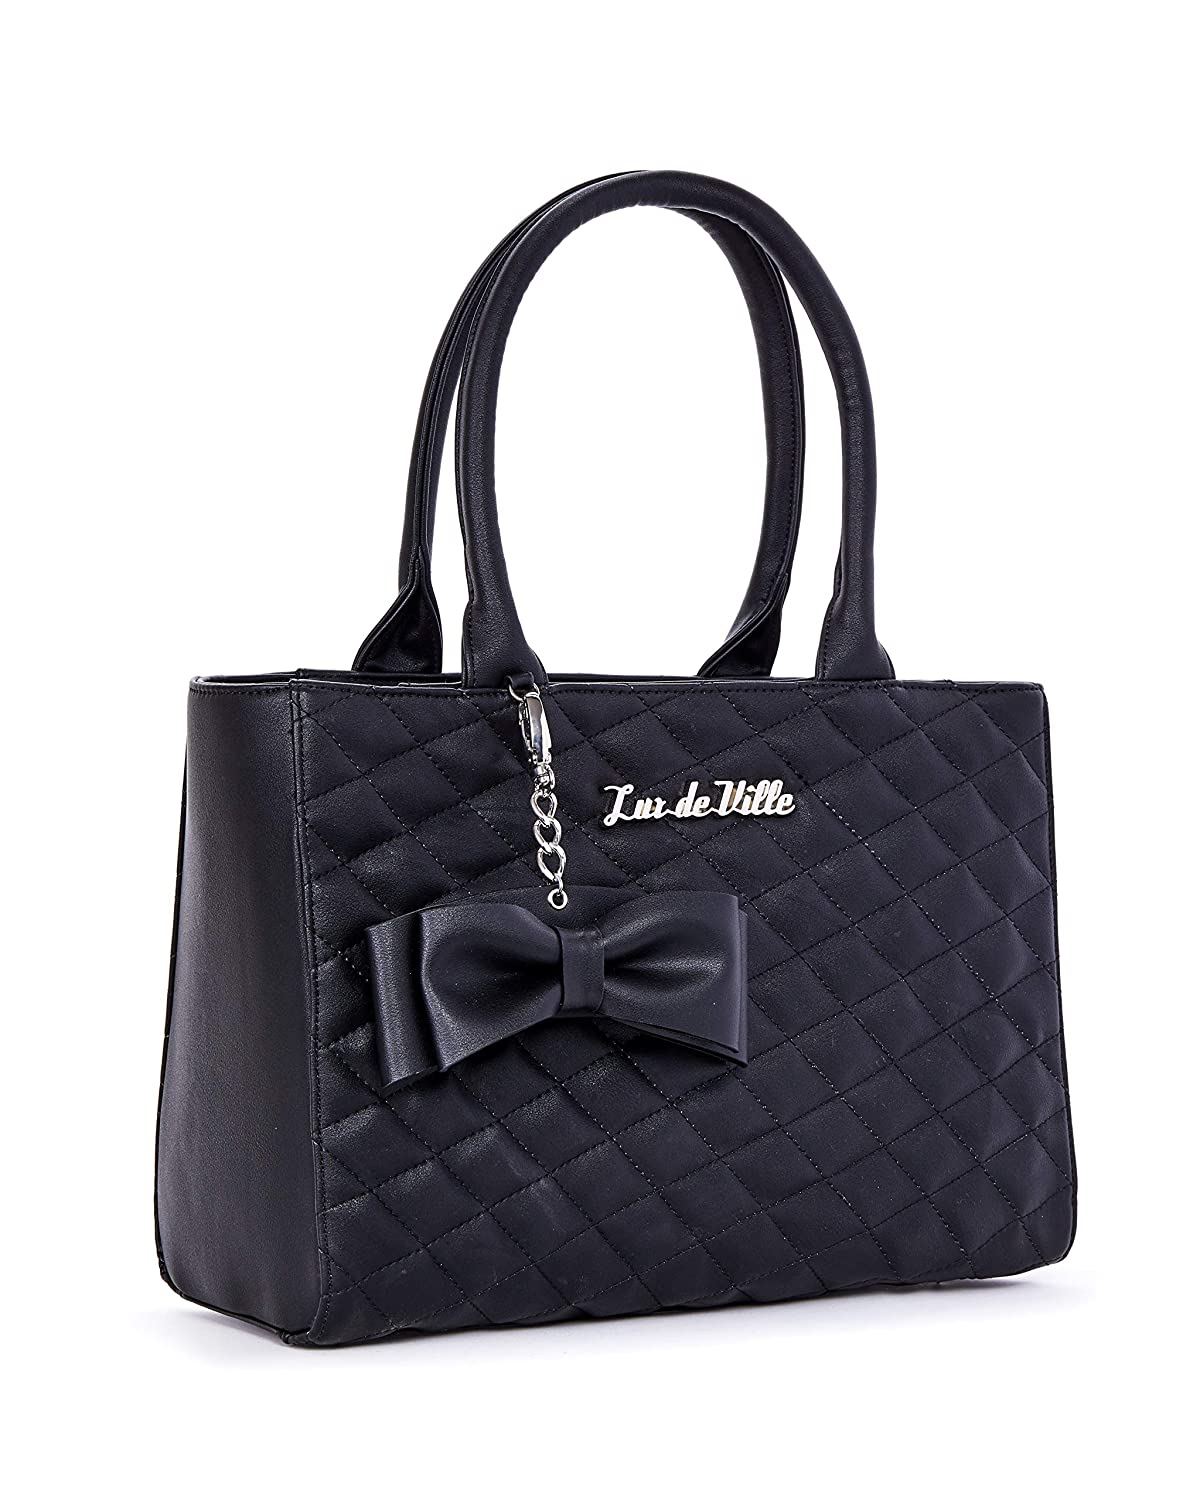 Black Sweet Pea Tote Black Matte  Limited Edition